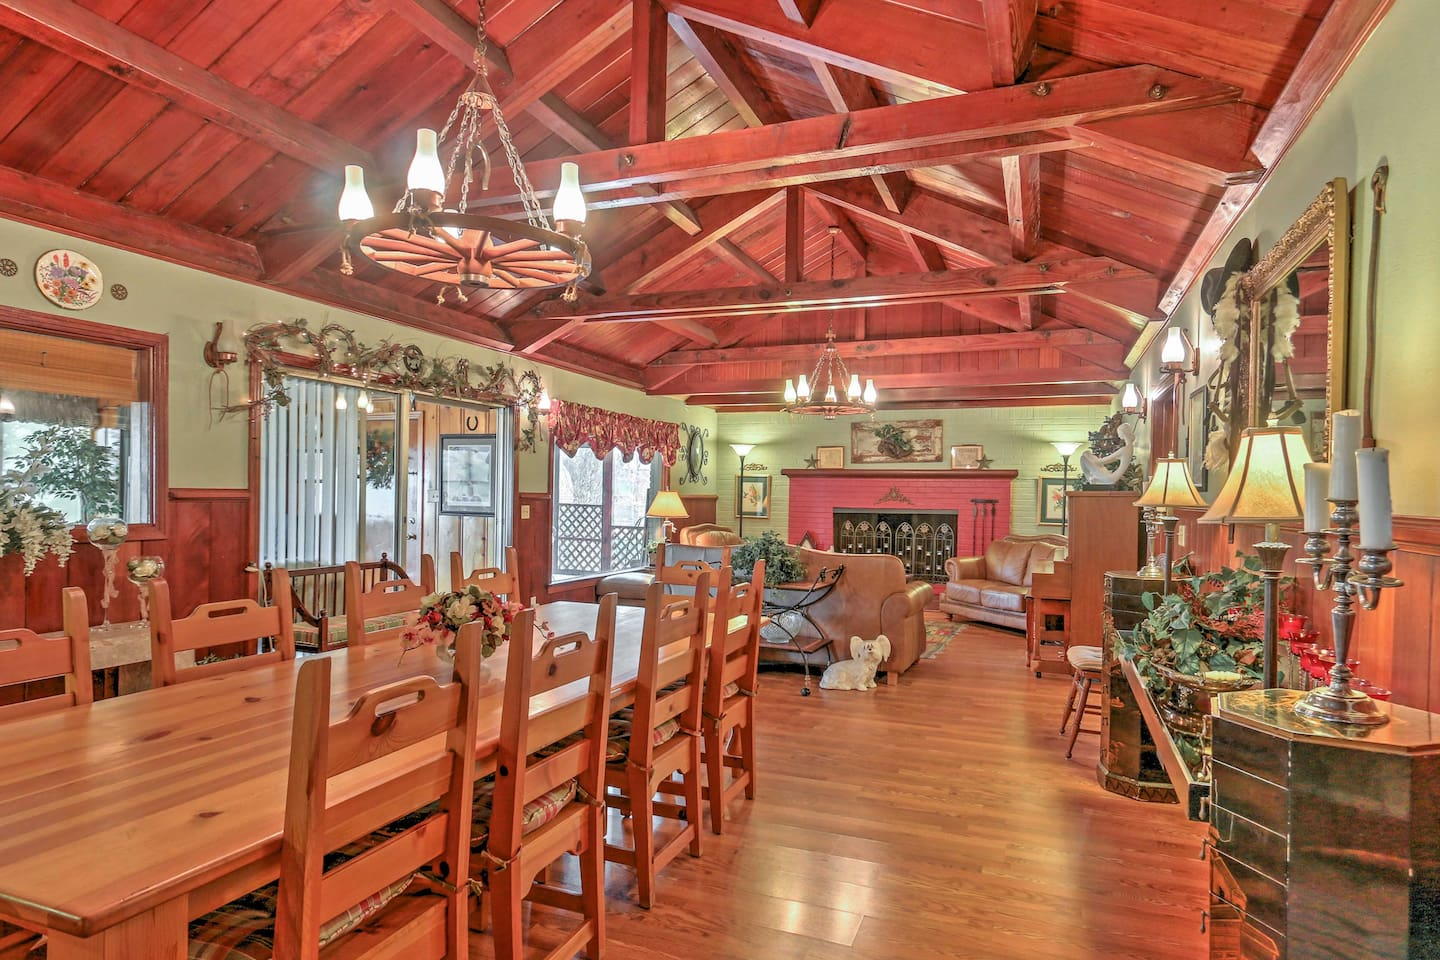 Wood floors and cathedral ceilings add to the charm and warmth of this home.